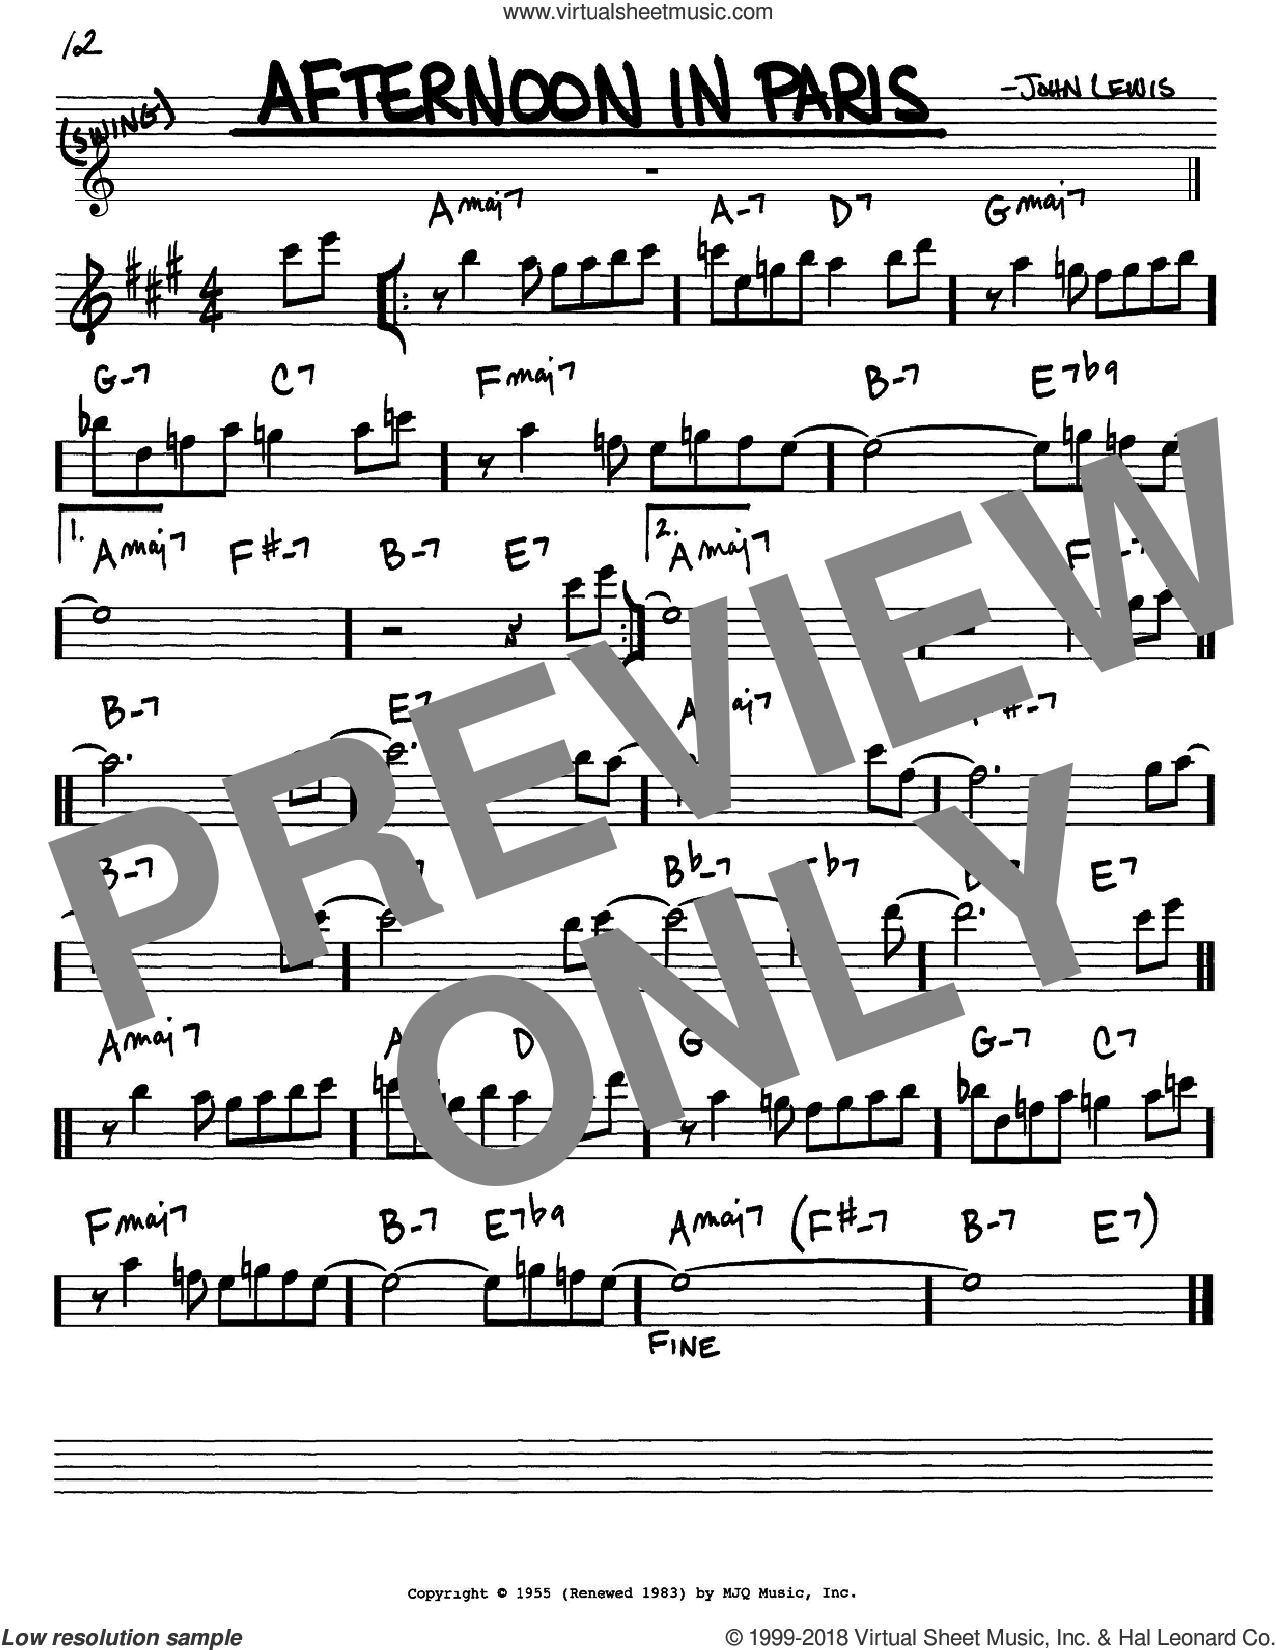 Afternoon In Paris sheet music for voice and other instruments (in Eb) by John Lewis, intermediate skill level